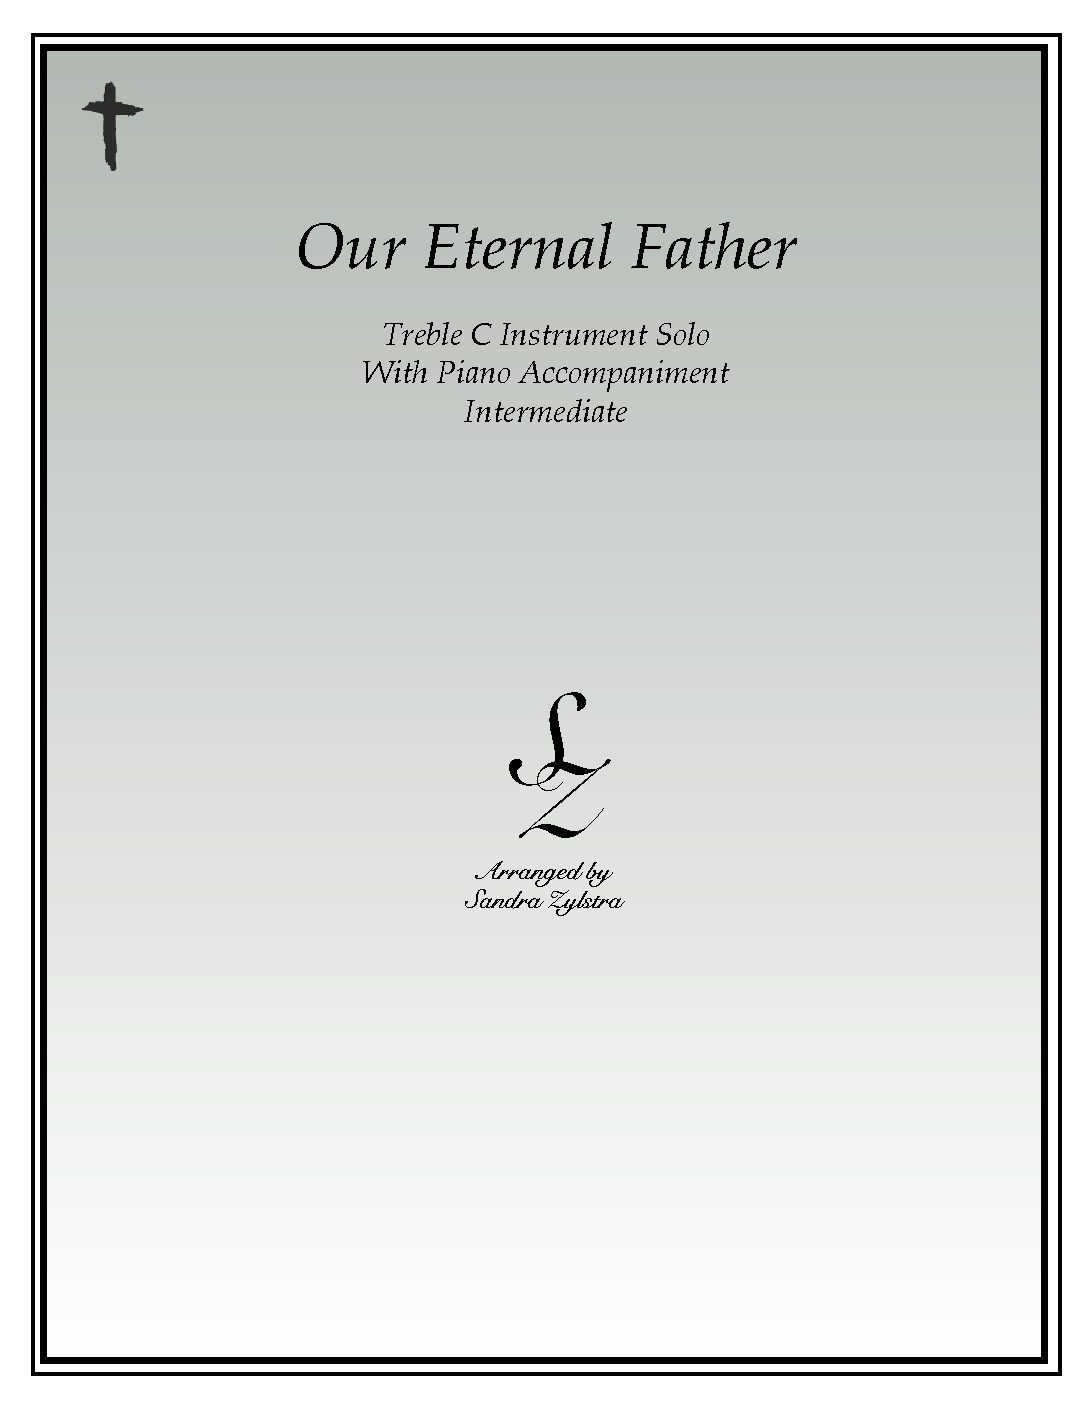 Our Eternal Father -Treble C Instrument Solo